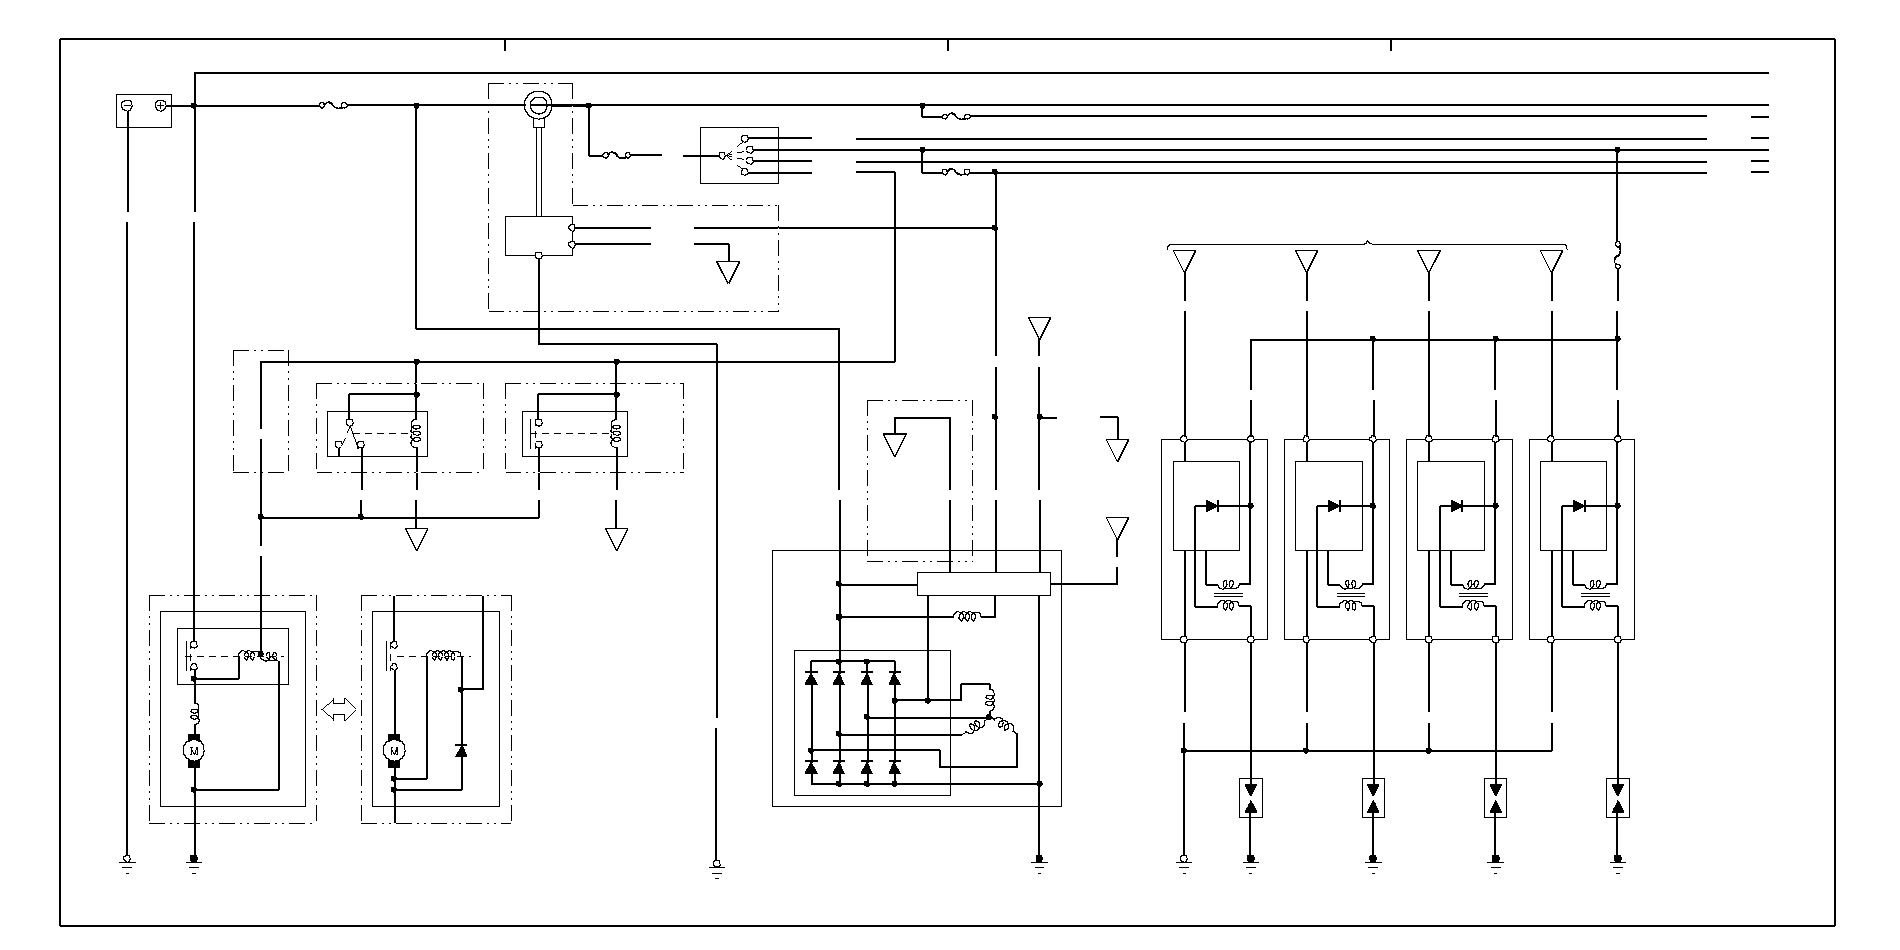 Cc1s Wiring Diagram